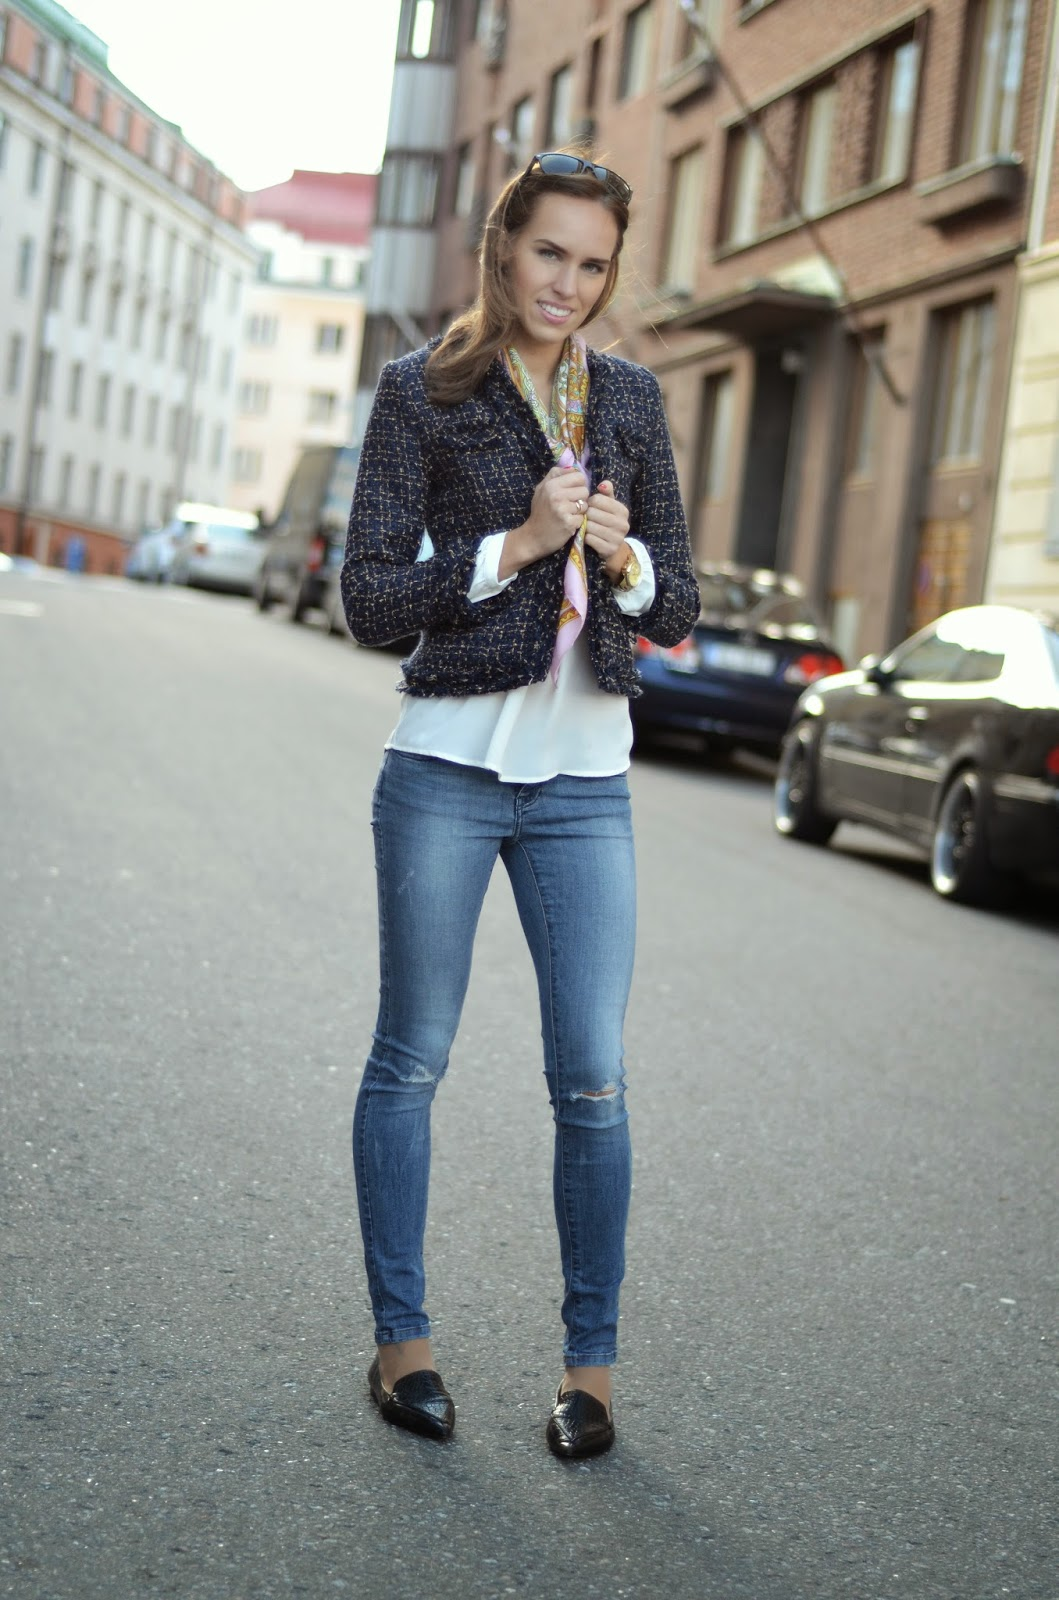 tweed-jacket-white-shirt-blue-jeans-outfit